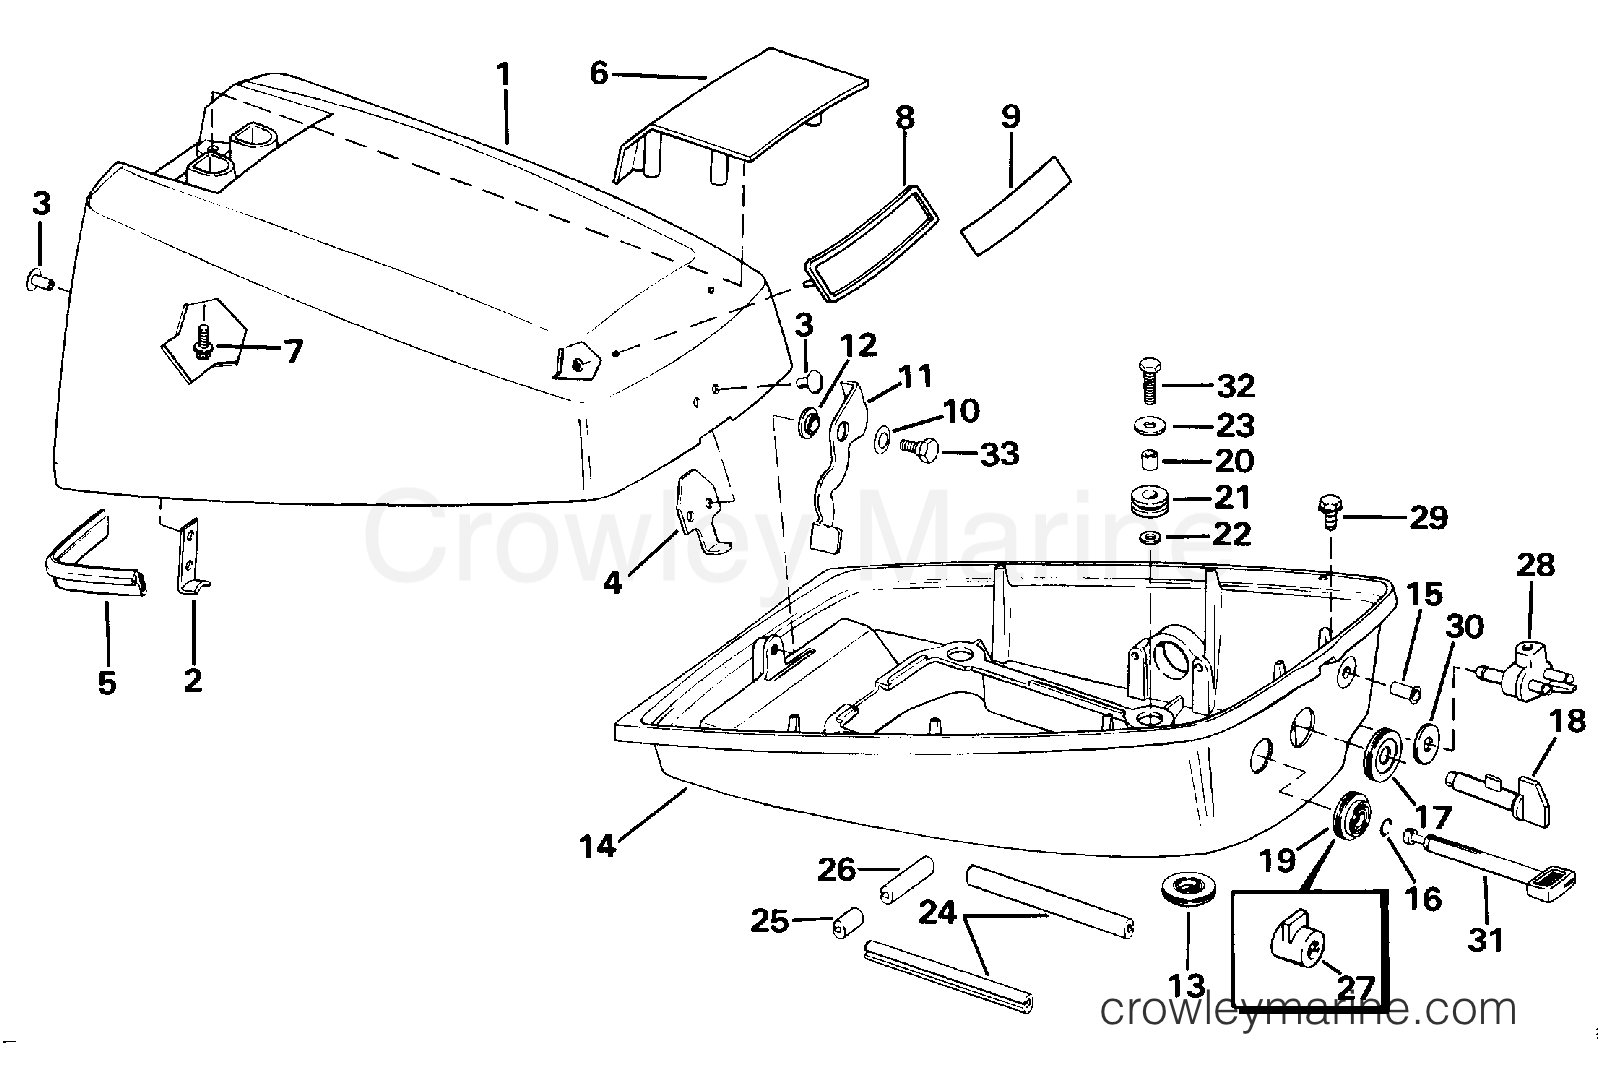 engine cover - models with separate fuel tank